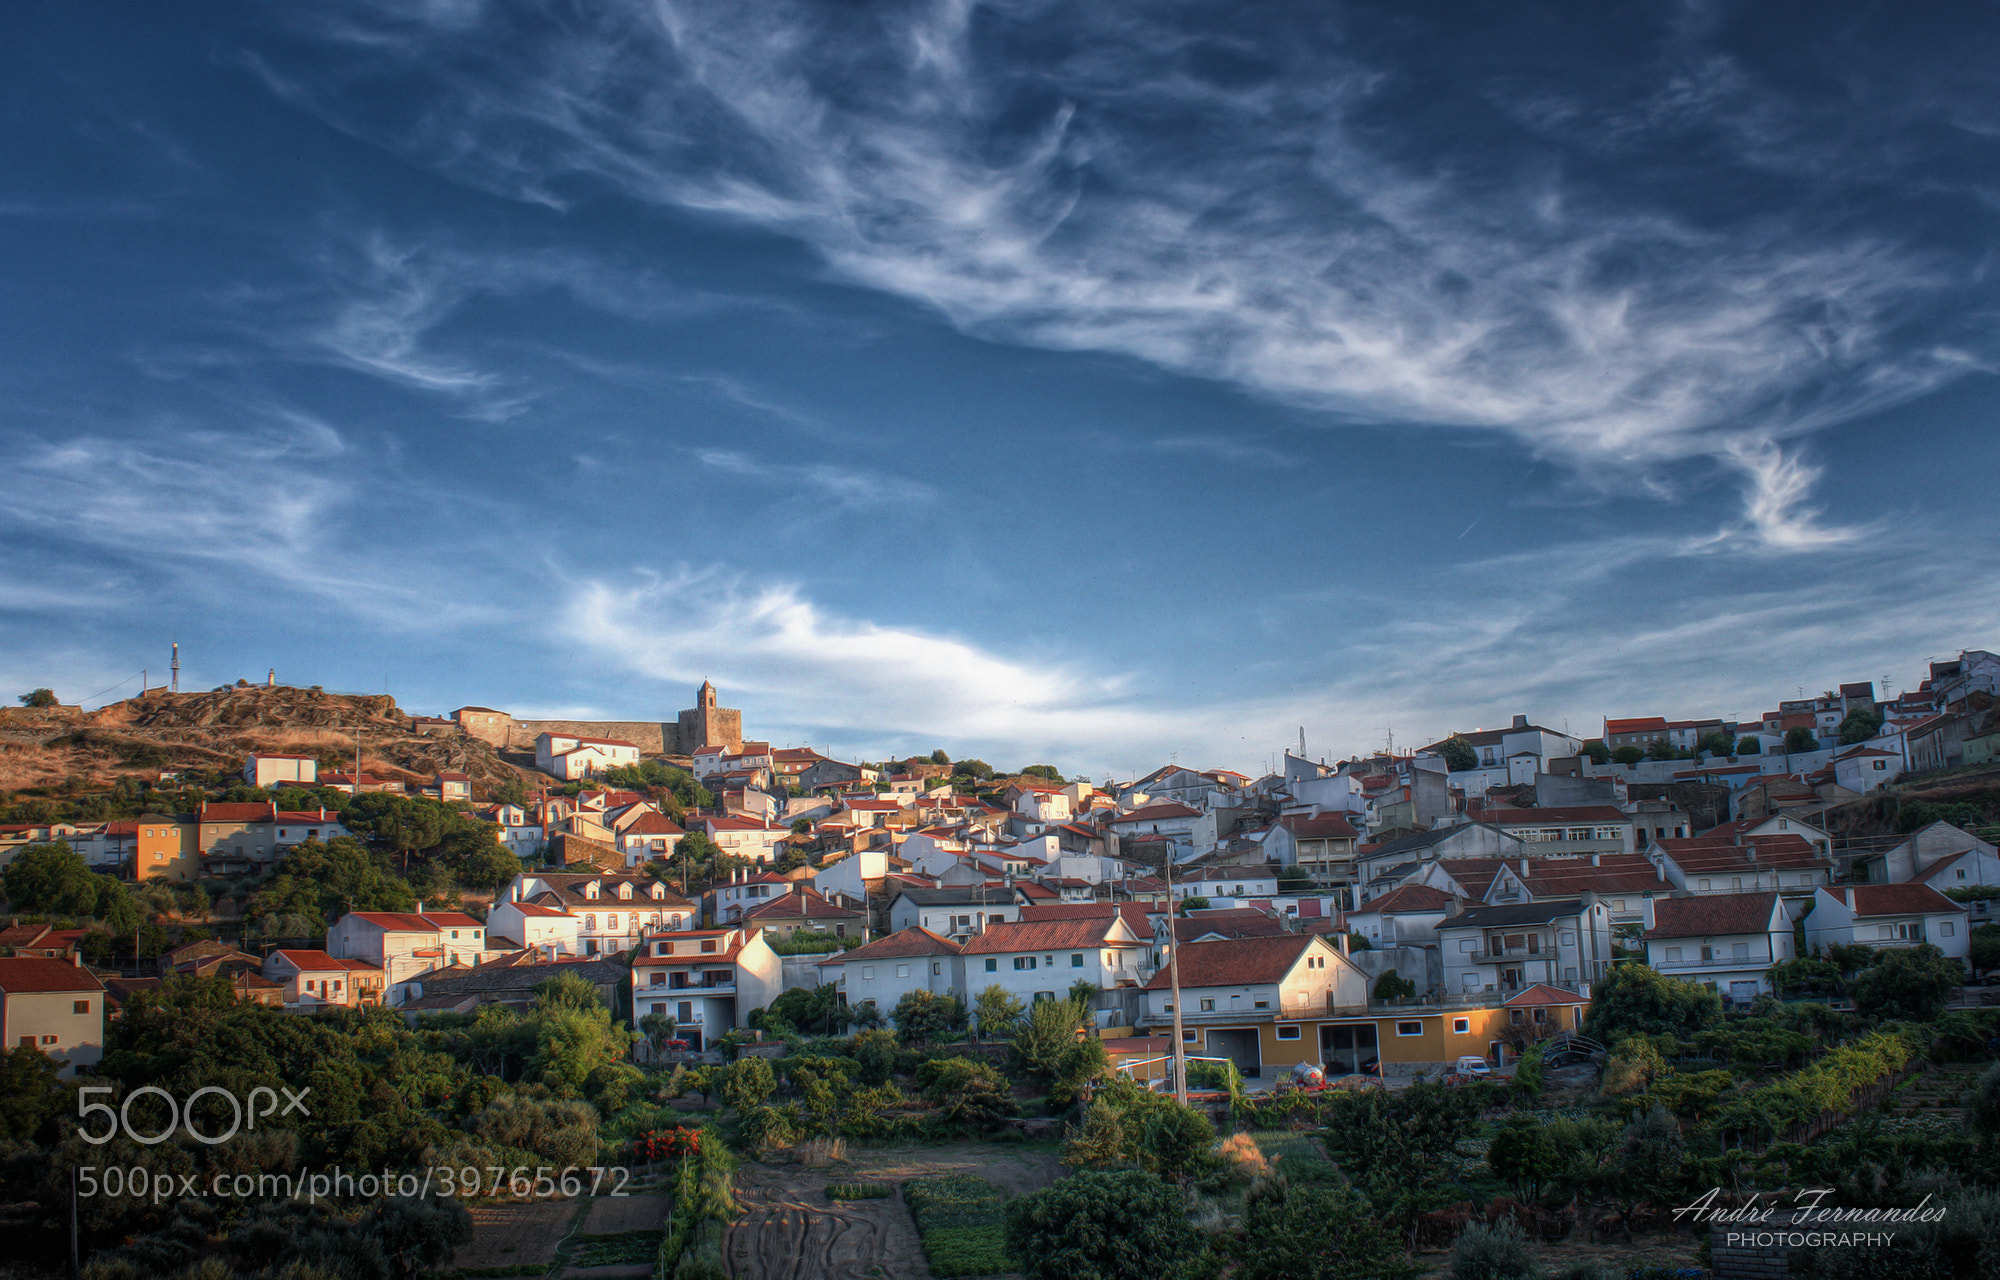 Photograph Penamacor (HDR) by André Fernandes on 500px